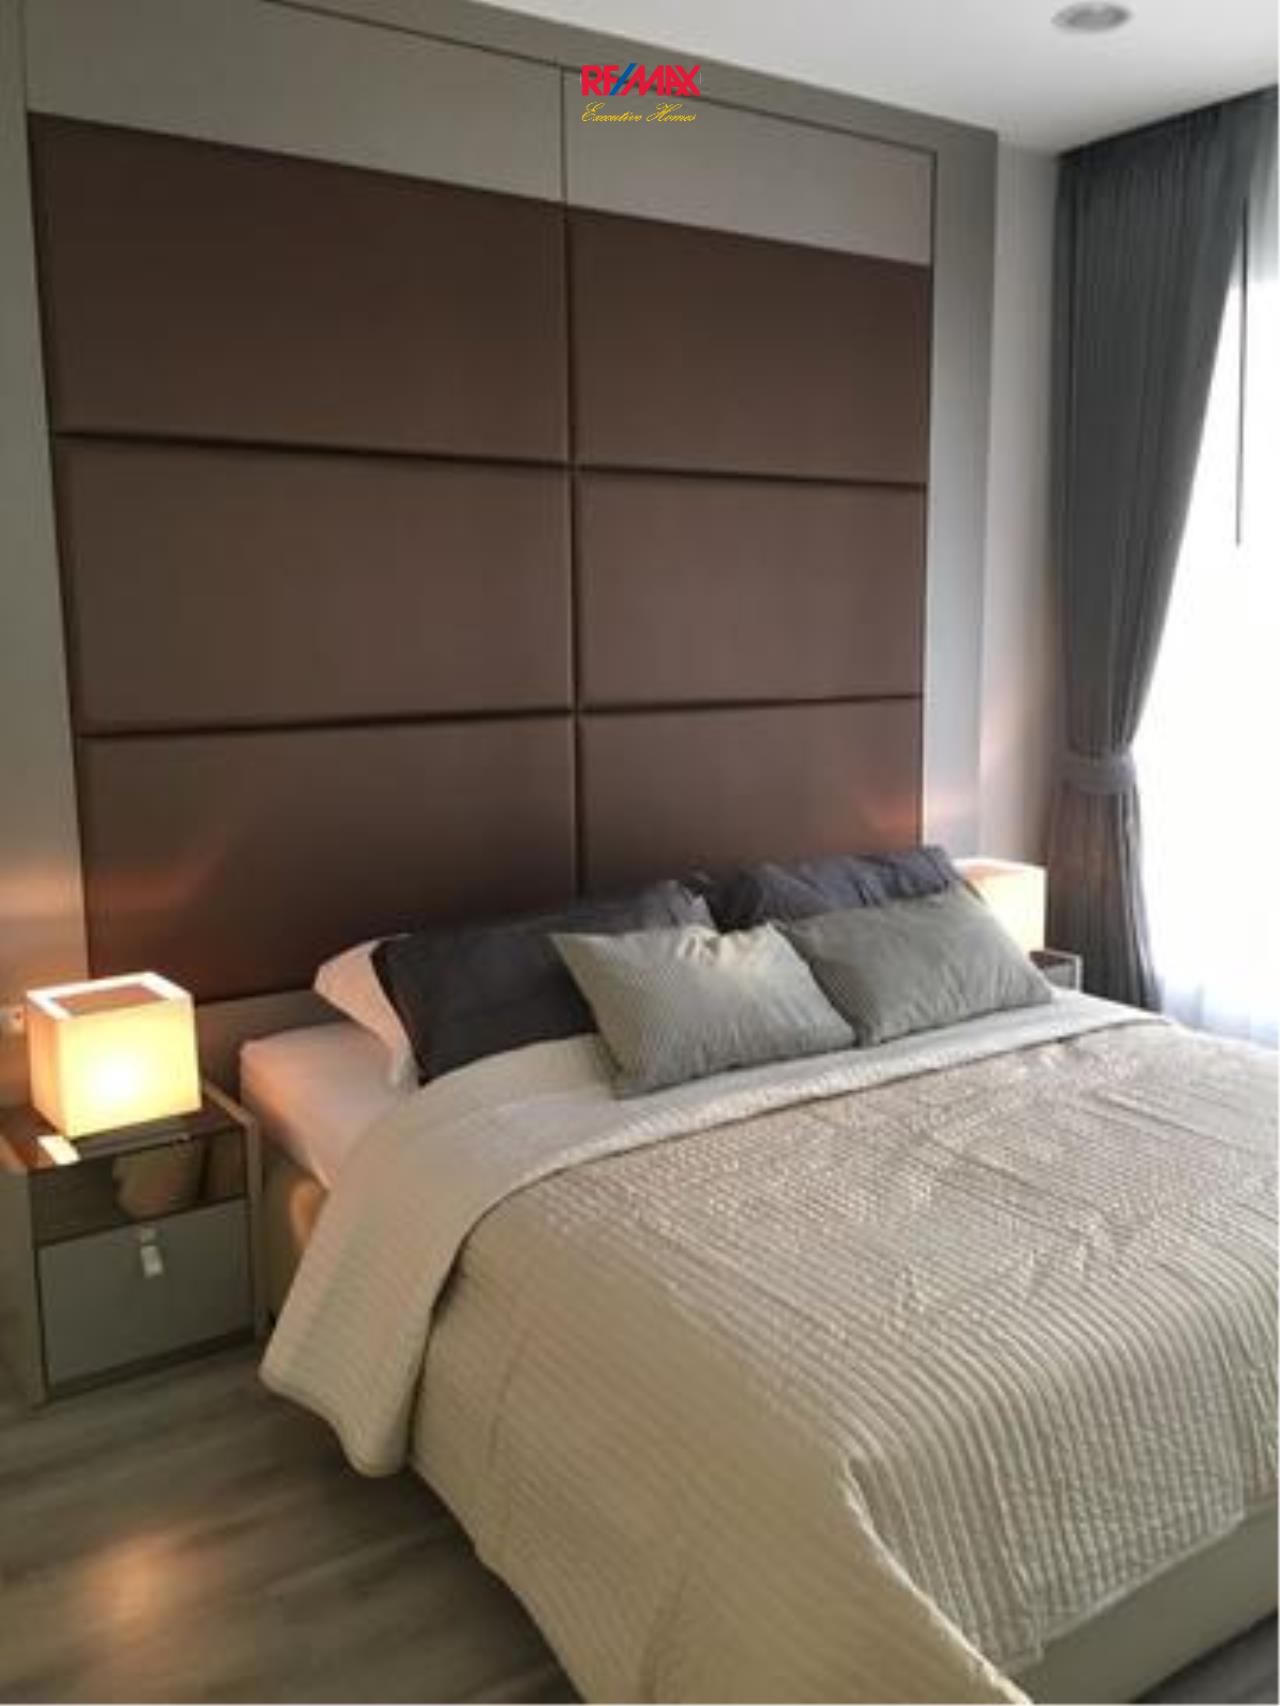 RE/MAX Executive Homes Agency's Stunning 2 Bedroom for Rent Centric Sathorn St. Louis 4